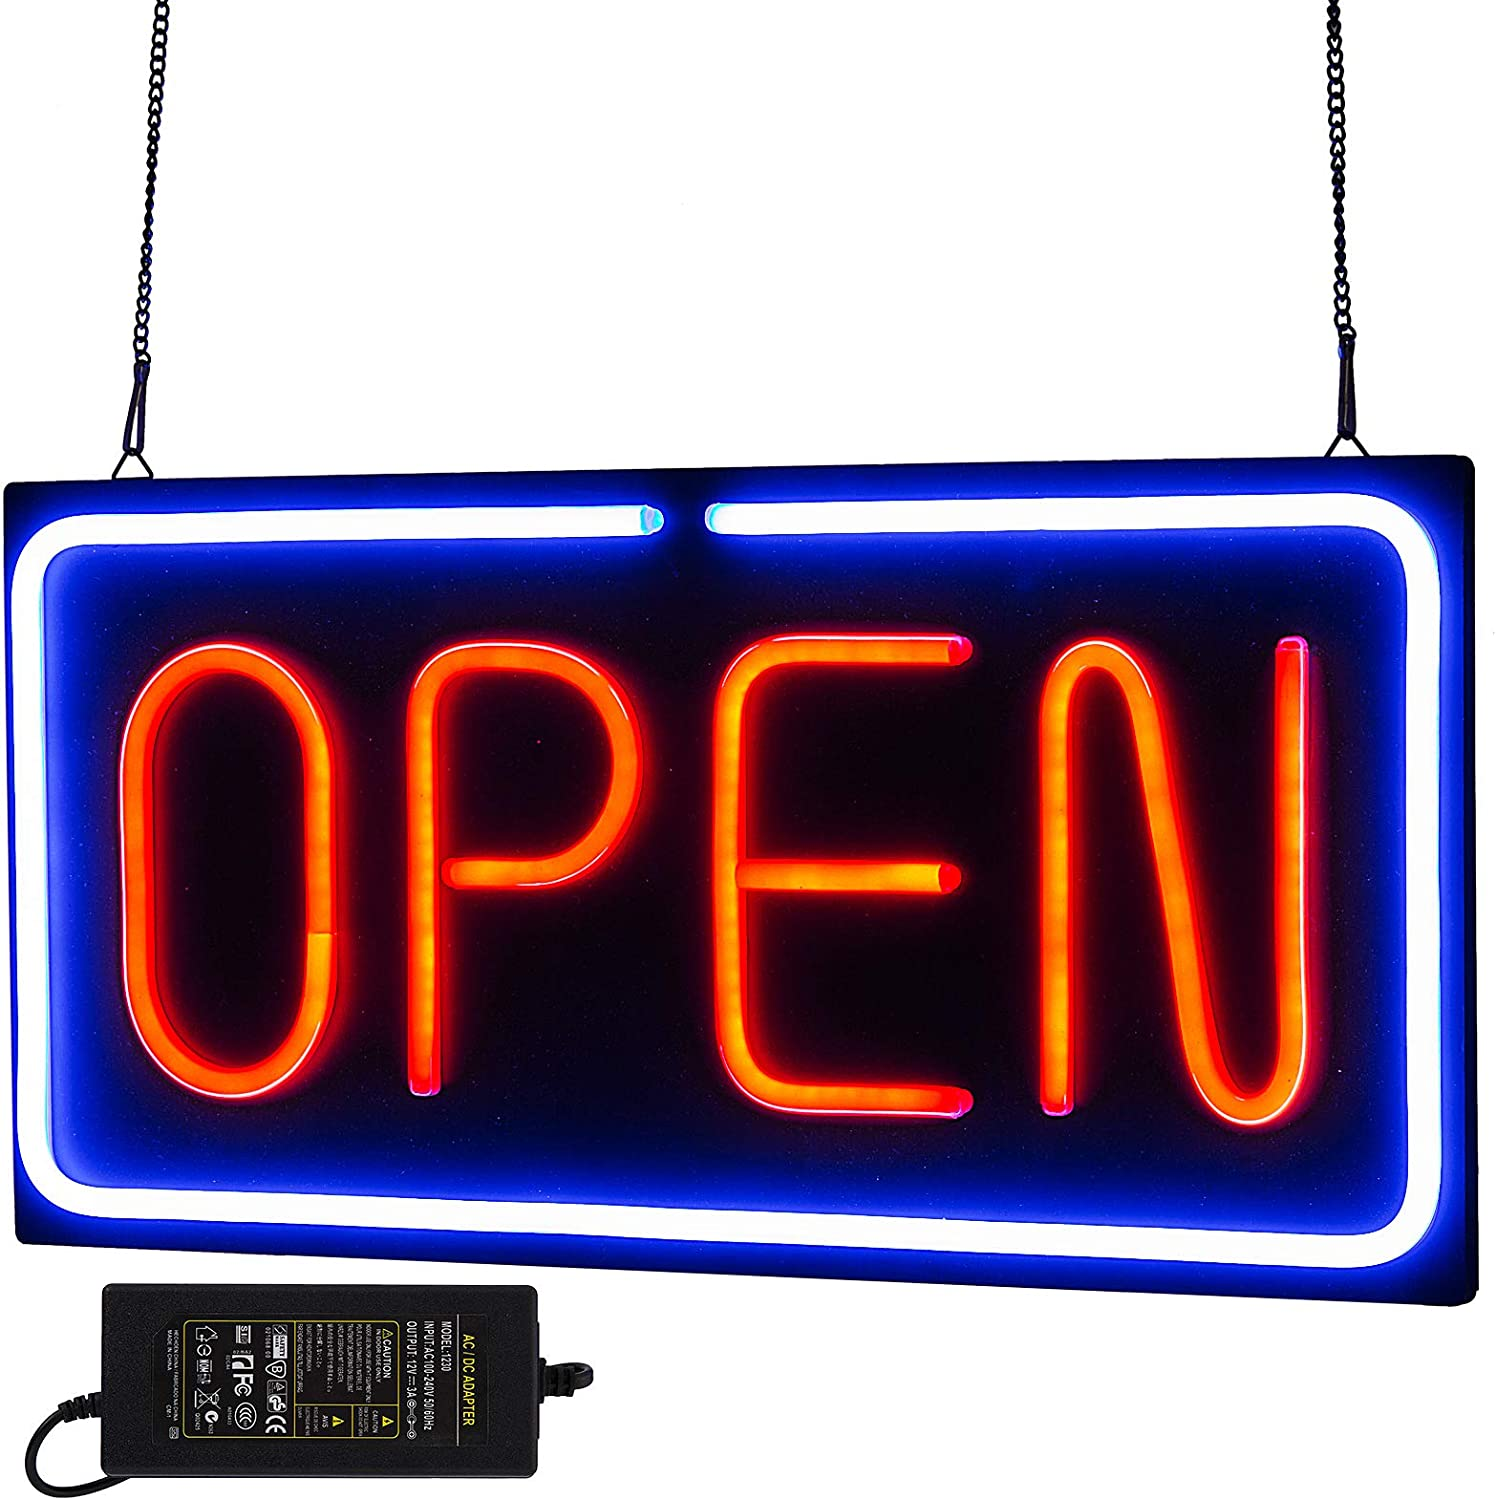 "VEVOR Neon Open Sign 24x12 inch Led Open Sign 30W Horizontal Sign Open with 24 inch Hanging Chain and Power Adapter Bright Light for Business Walls Windows Bar Hotel Shops (24""X12""X1.2""-30W)"